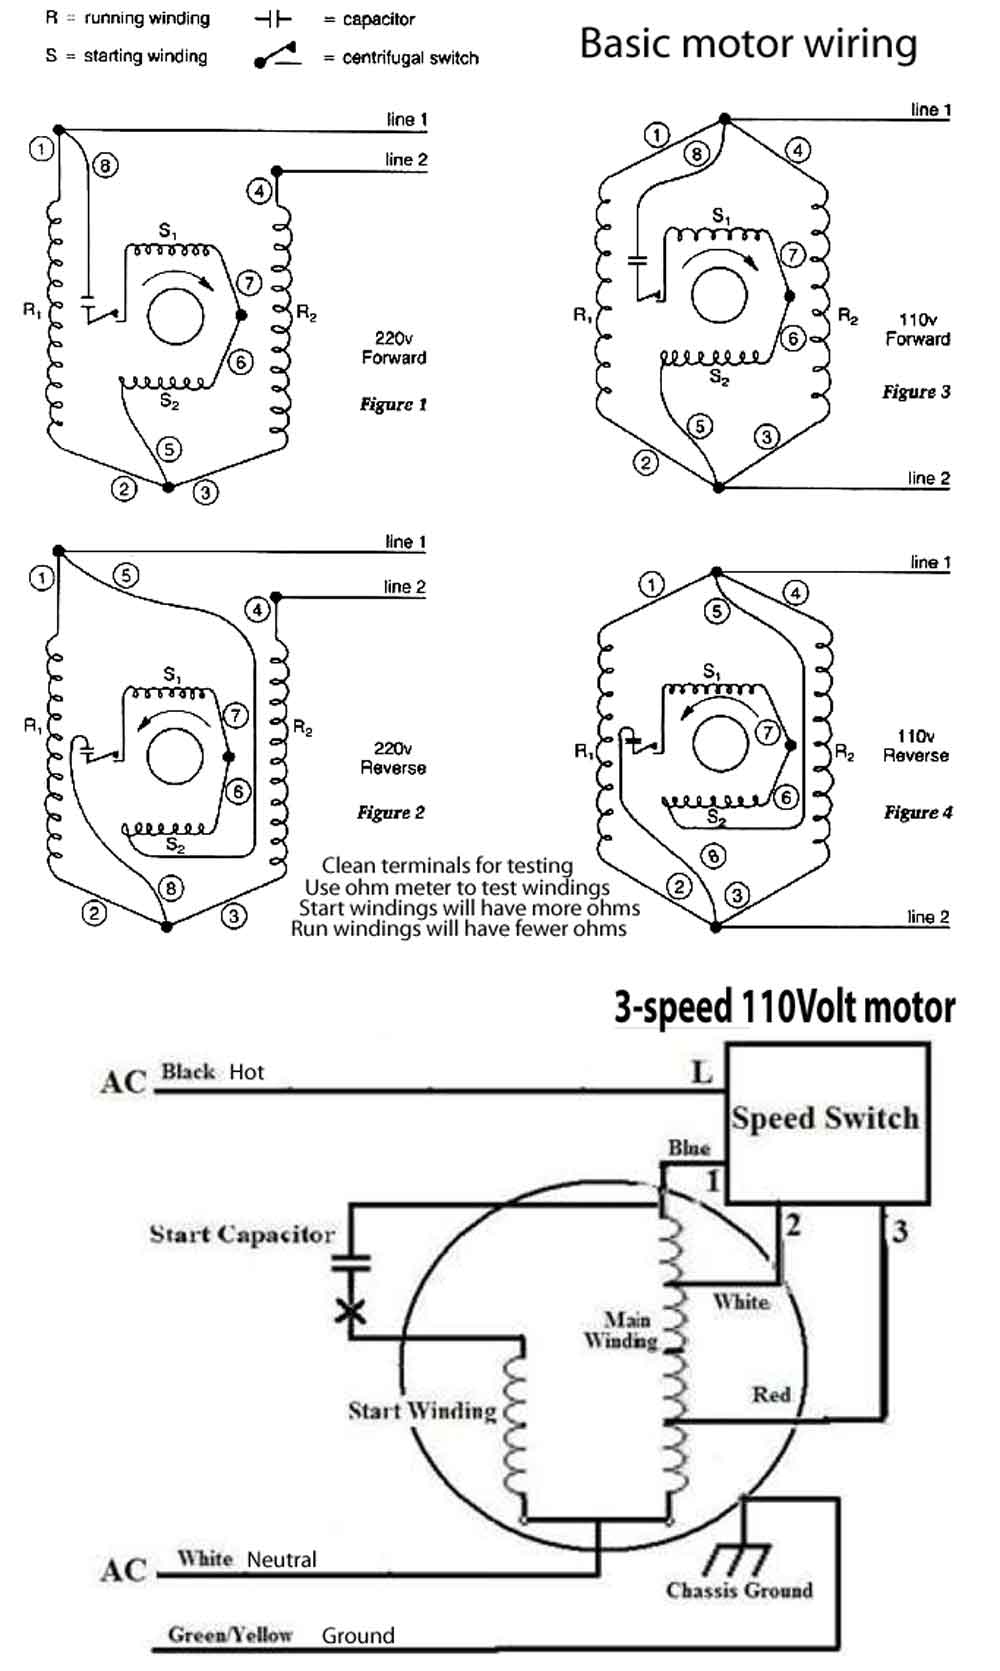 Blower fan motor wiring diagram on how to wire 3 speed fan switch Blower Motor Circuit Diagram Furnace Blower Motor Wiring Diagram